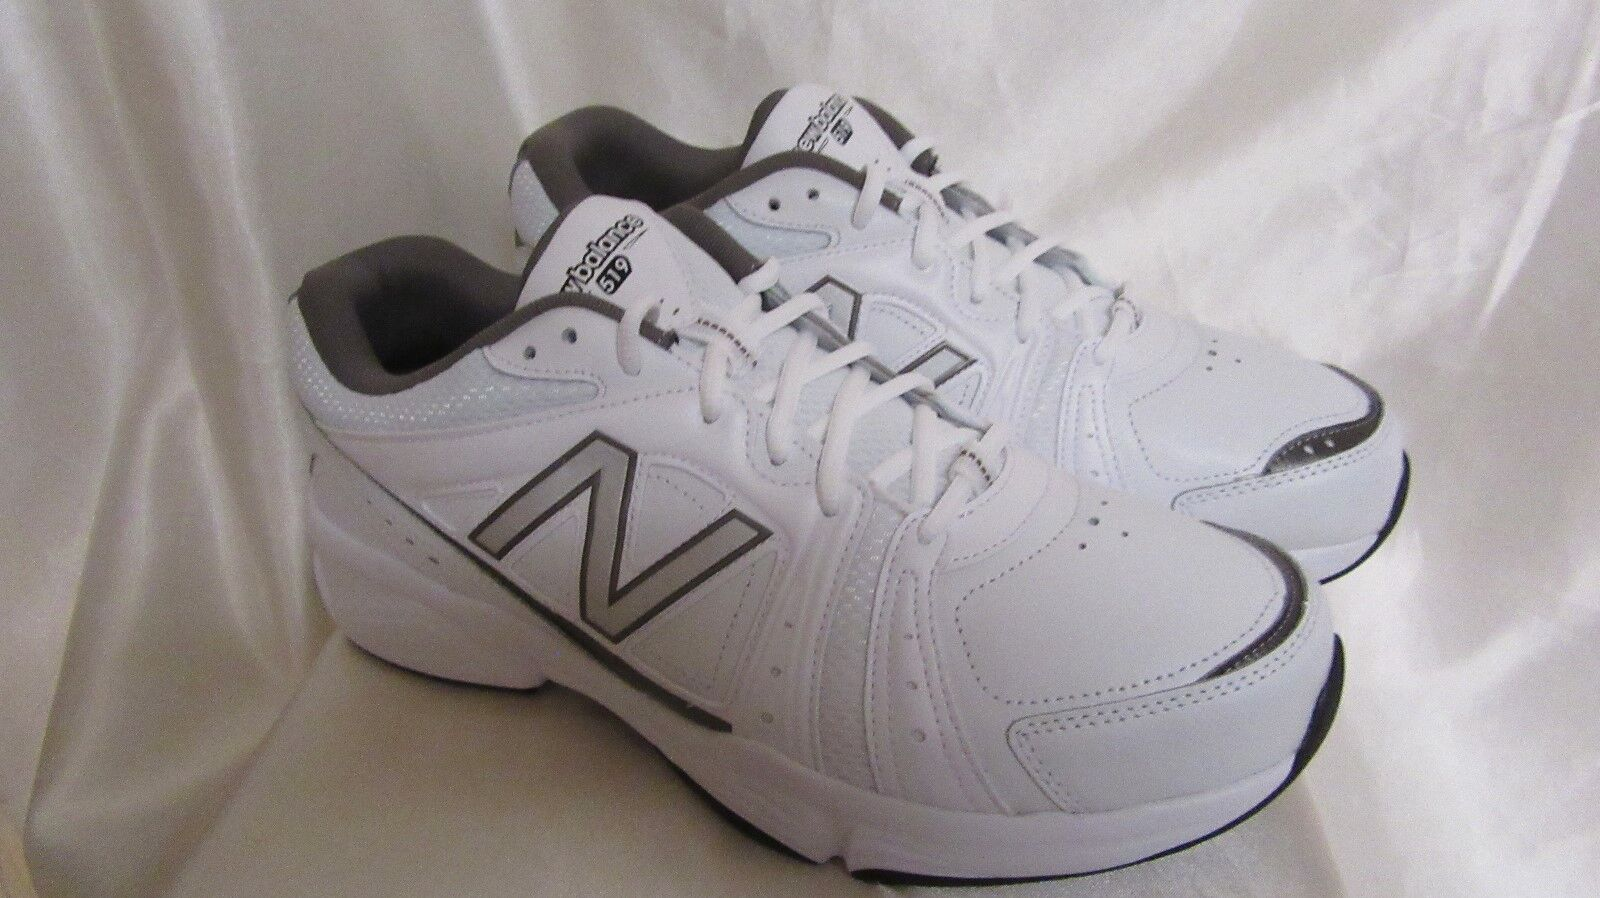 Uomo`S 8 NEW BALANCE ATHLETIC SNEAKERS SIZE 8 Uomo`S  MEDIUM  NEW MX519WG WHITE ba380f